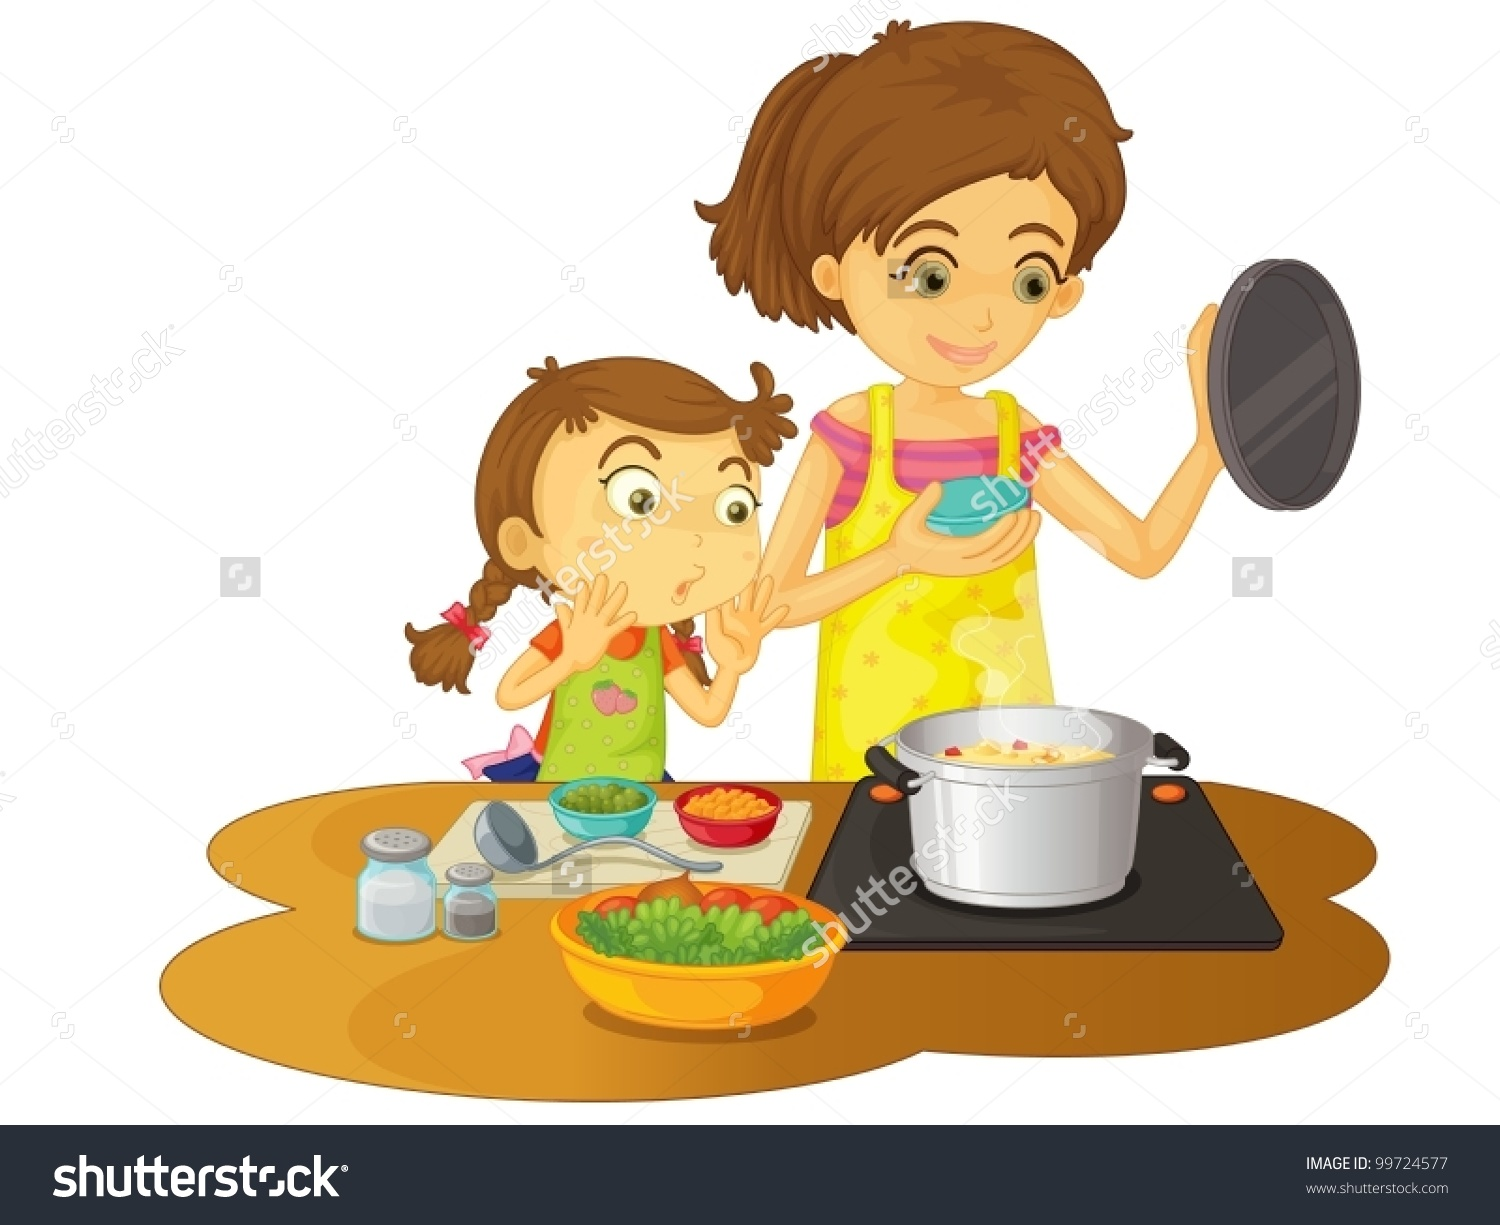 Cooking clipart motherr. Mother station